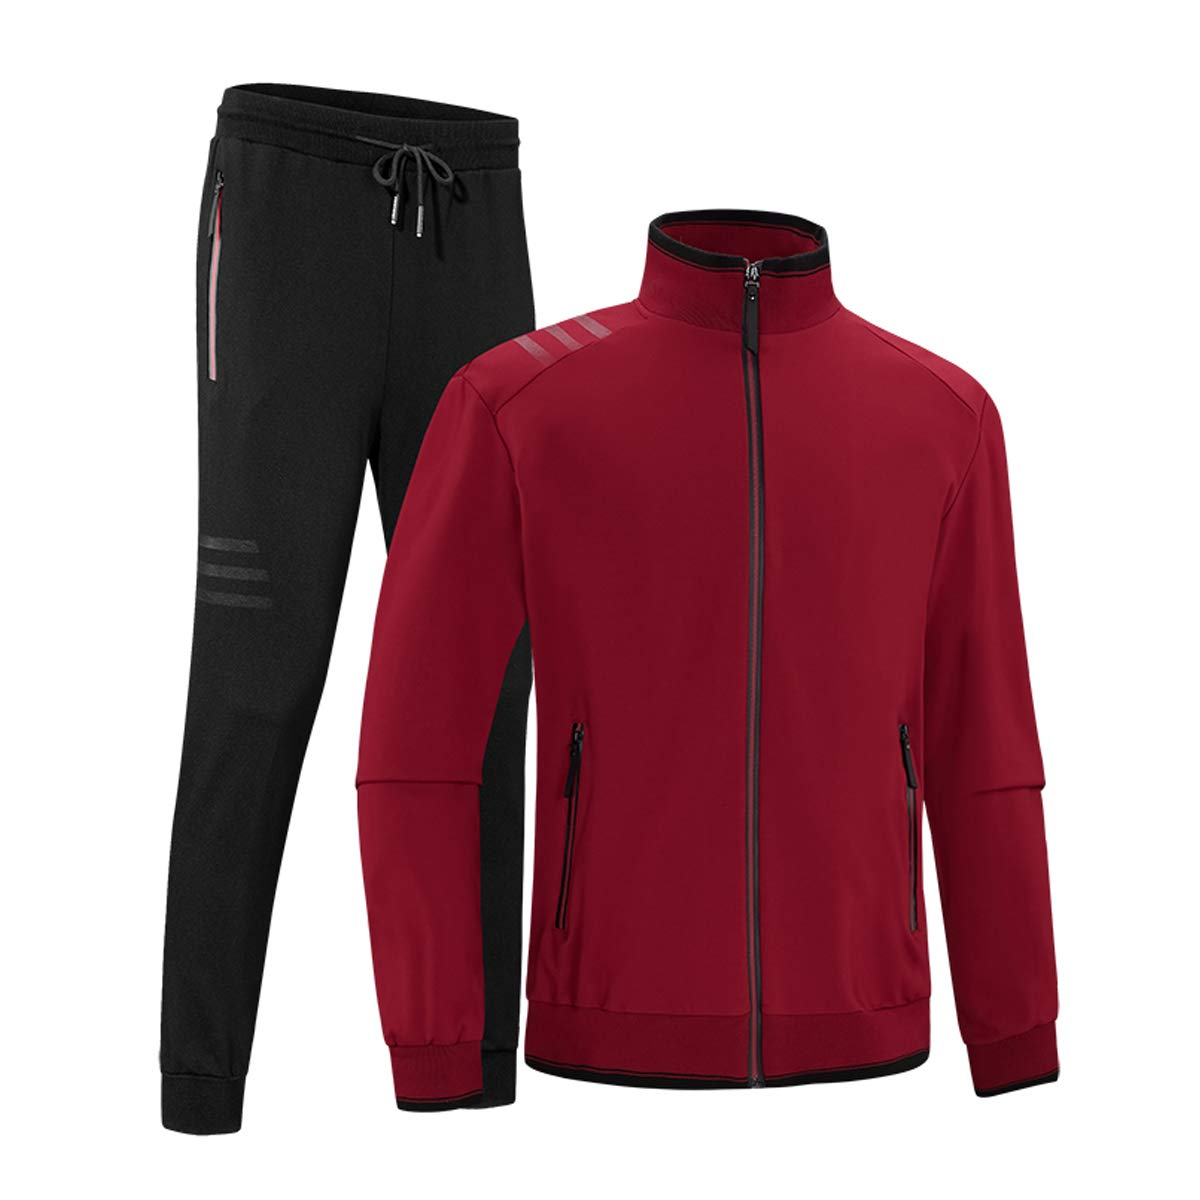 INVACHI Men's Casual 2 Pieces Contrast Cord Full Zip Sports Sets Jacket & Pants Active Fitness Tracksuit Set Wine Red by INVACHI